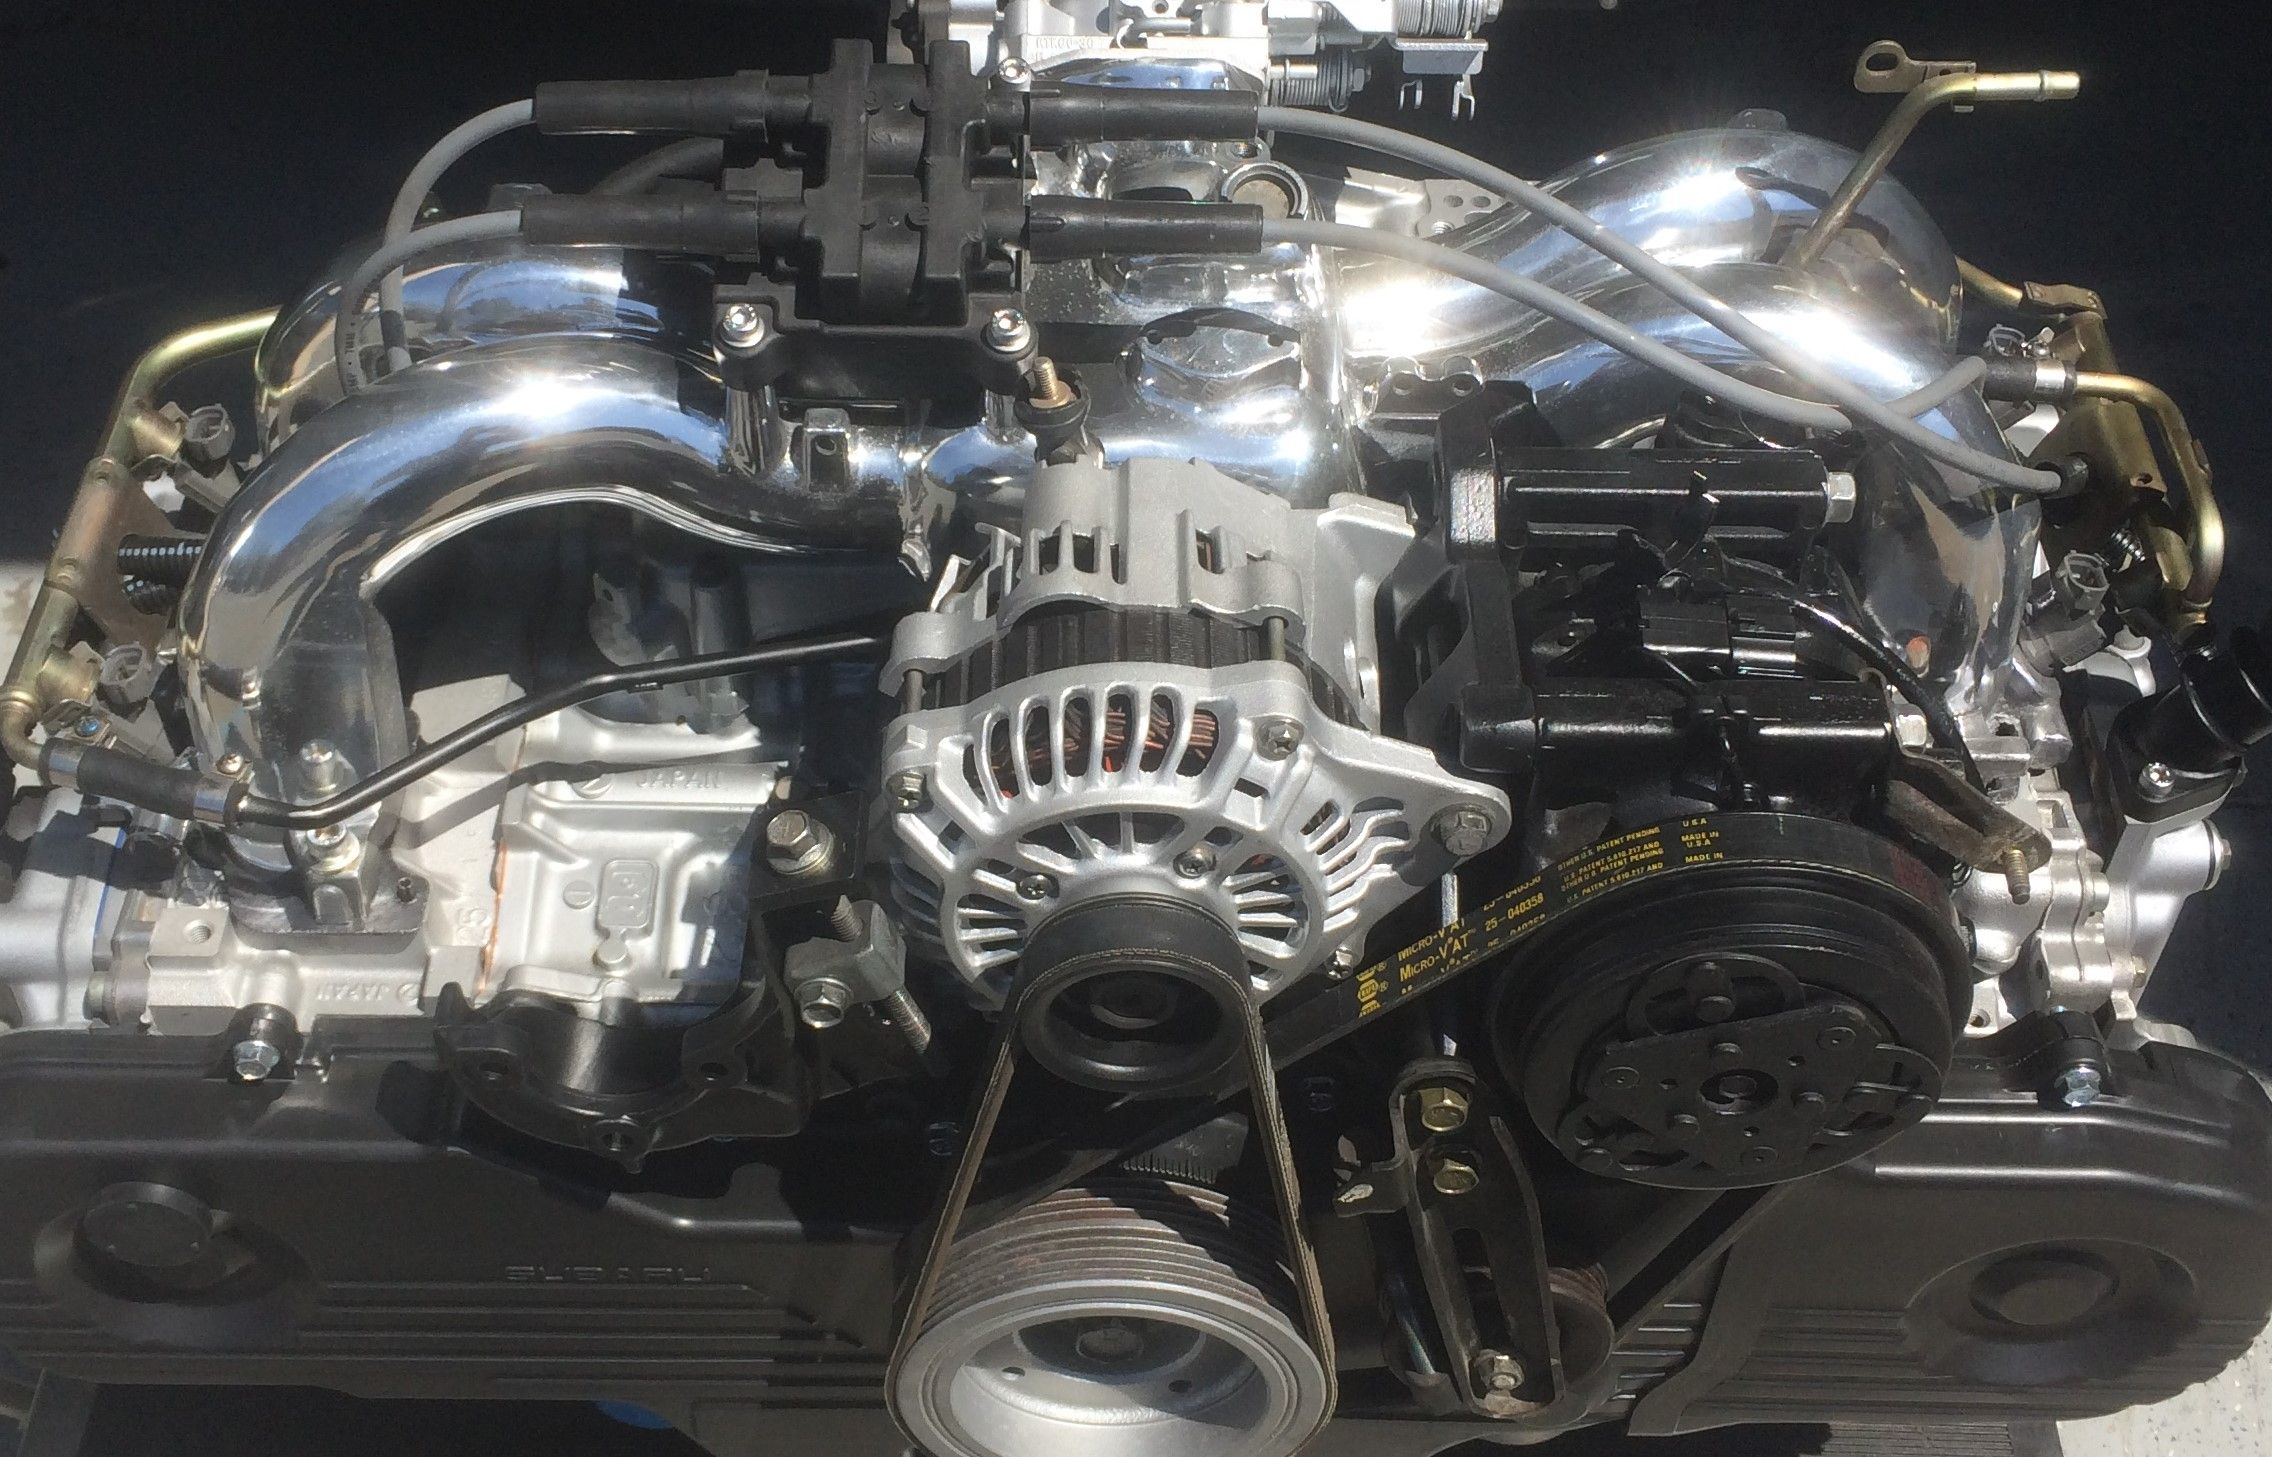 Subaru Ej22 Engine Legacy Archives Page 2 Of 5 Idiots New Wiring Harness Subiswaps Ca Smog Legal Conversion Get Yours On